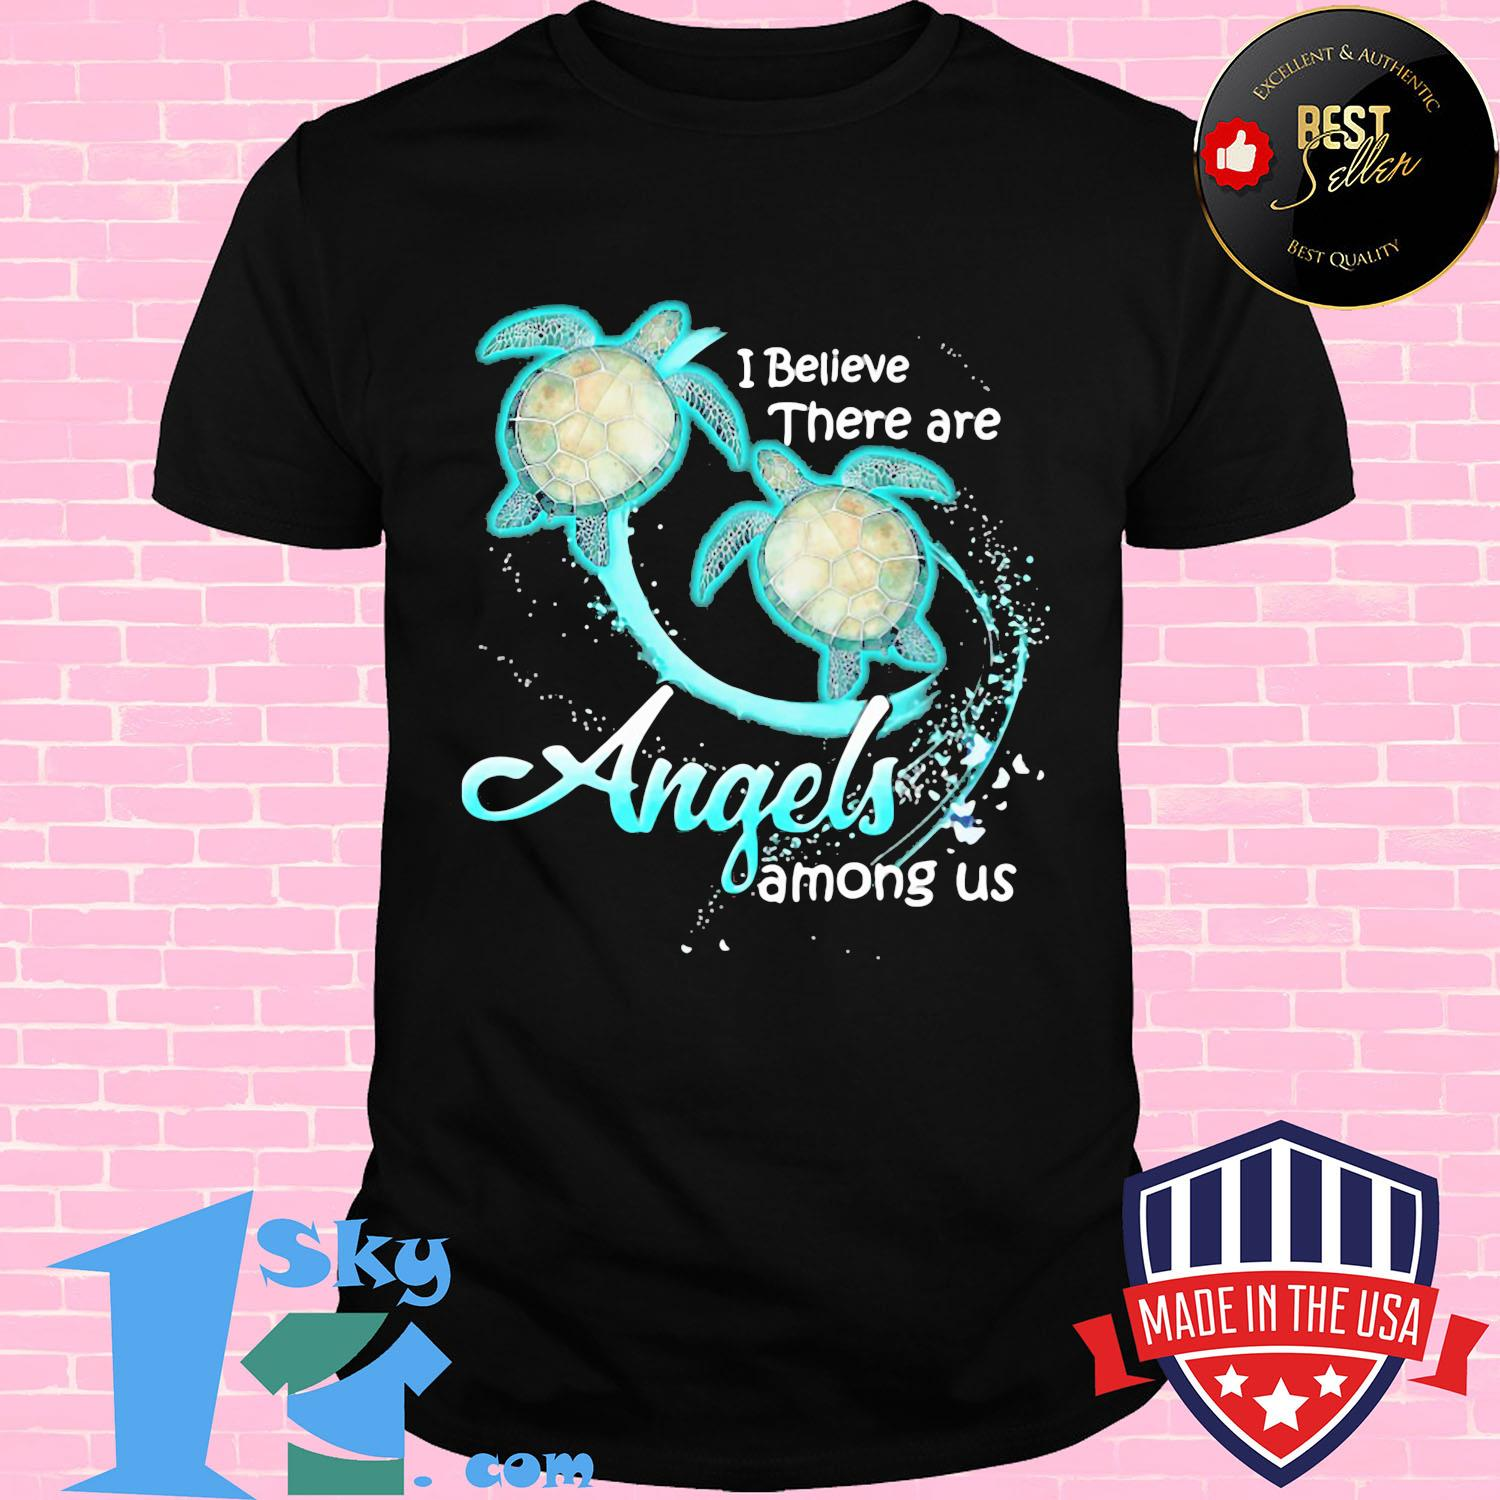 I believe there are angels among us turtle shirt